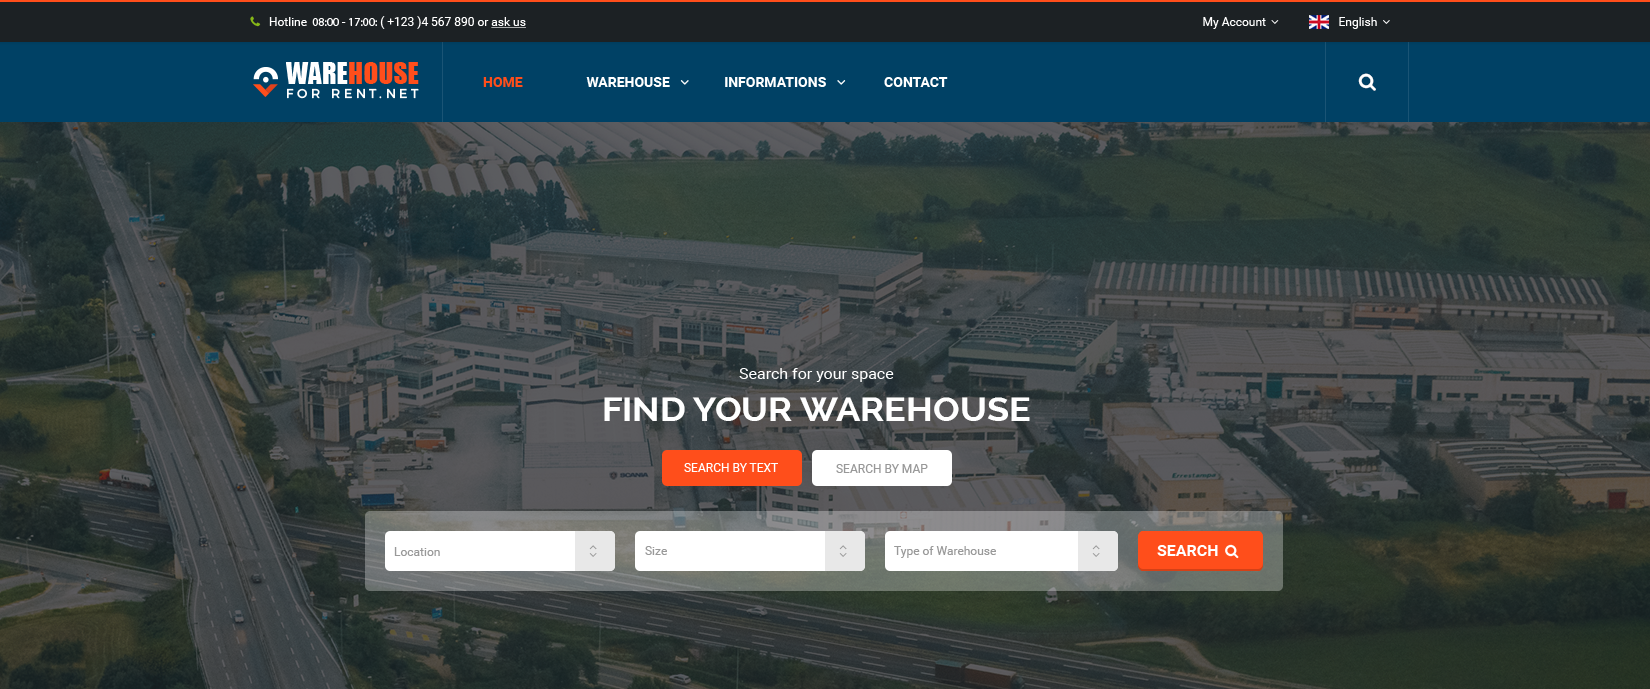 Warehouseforrent